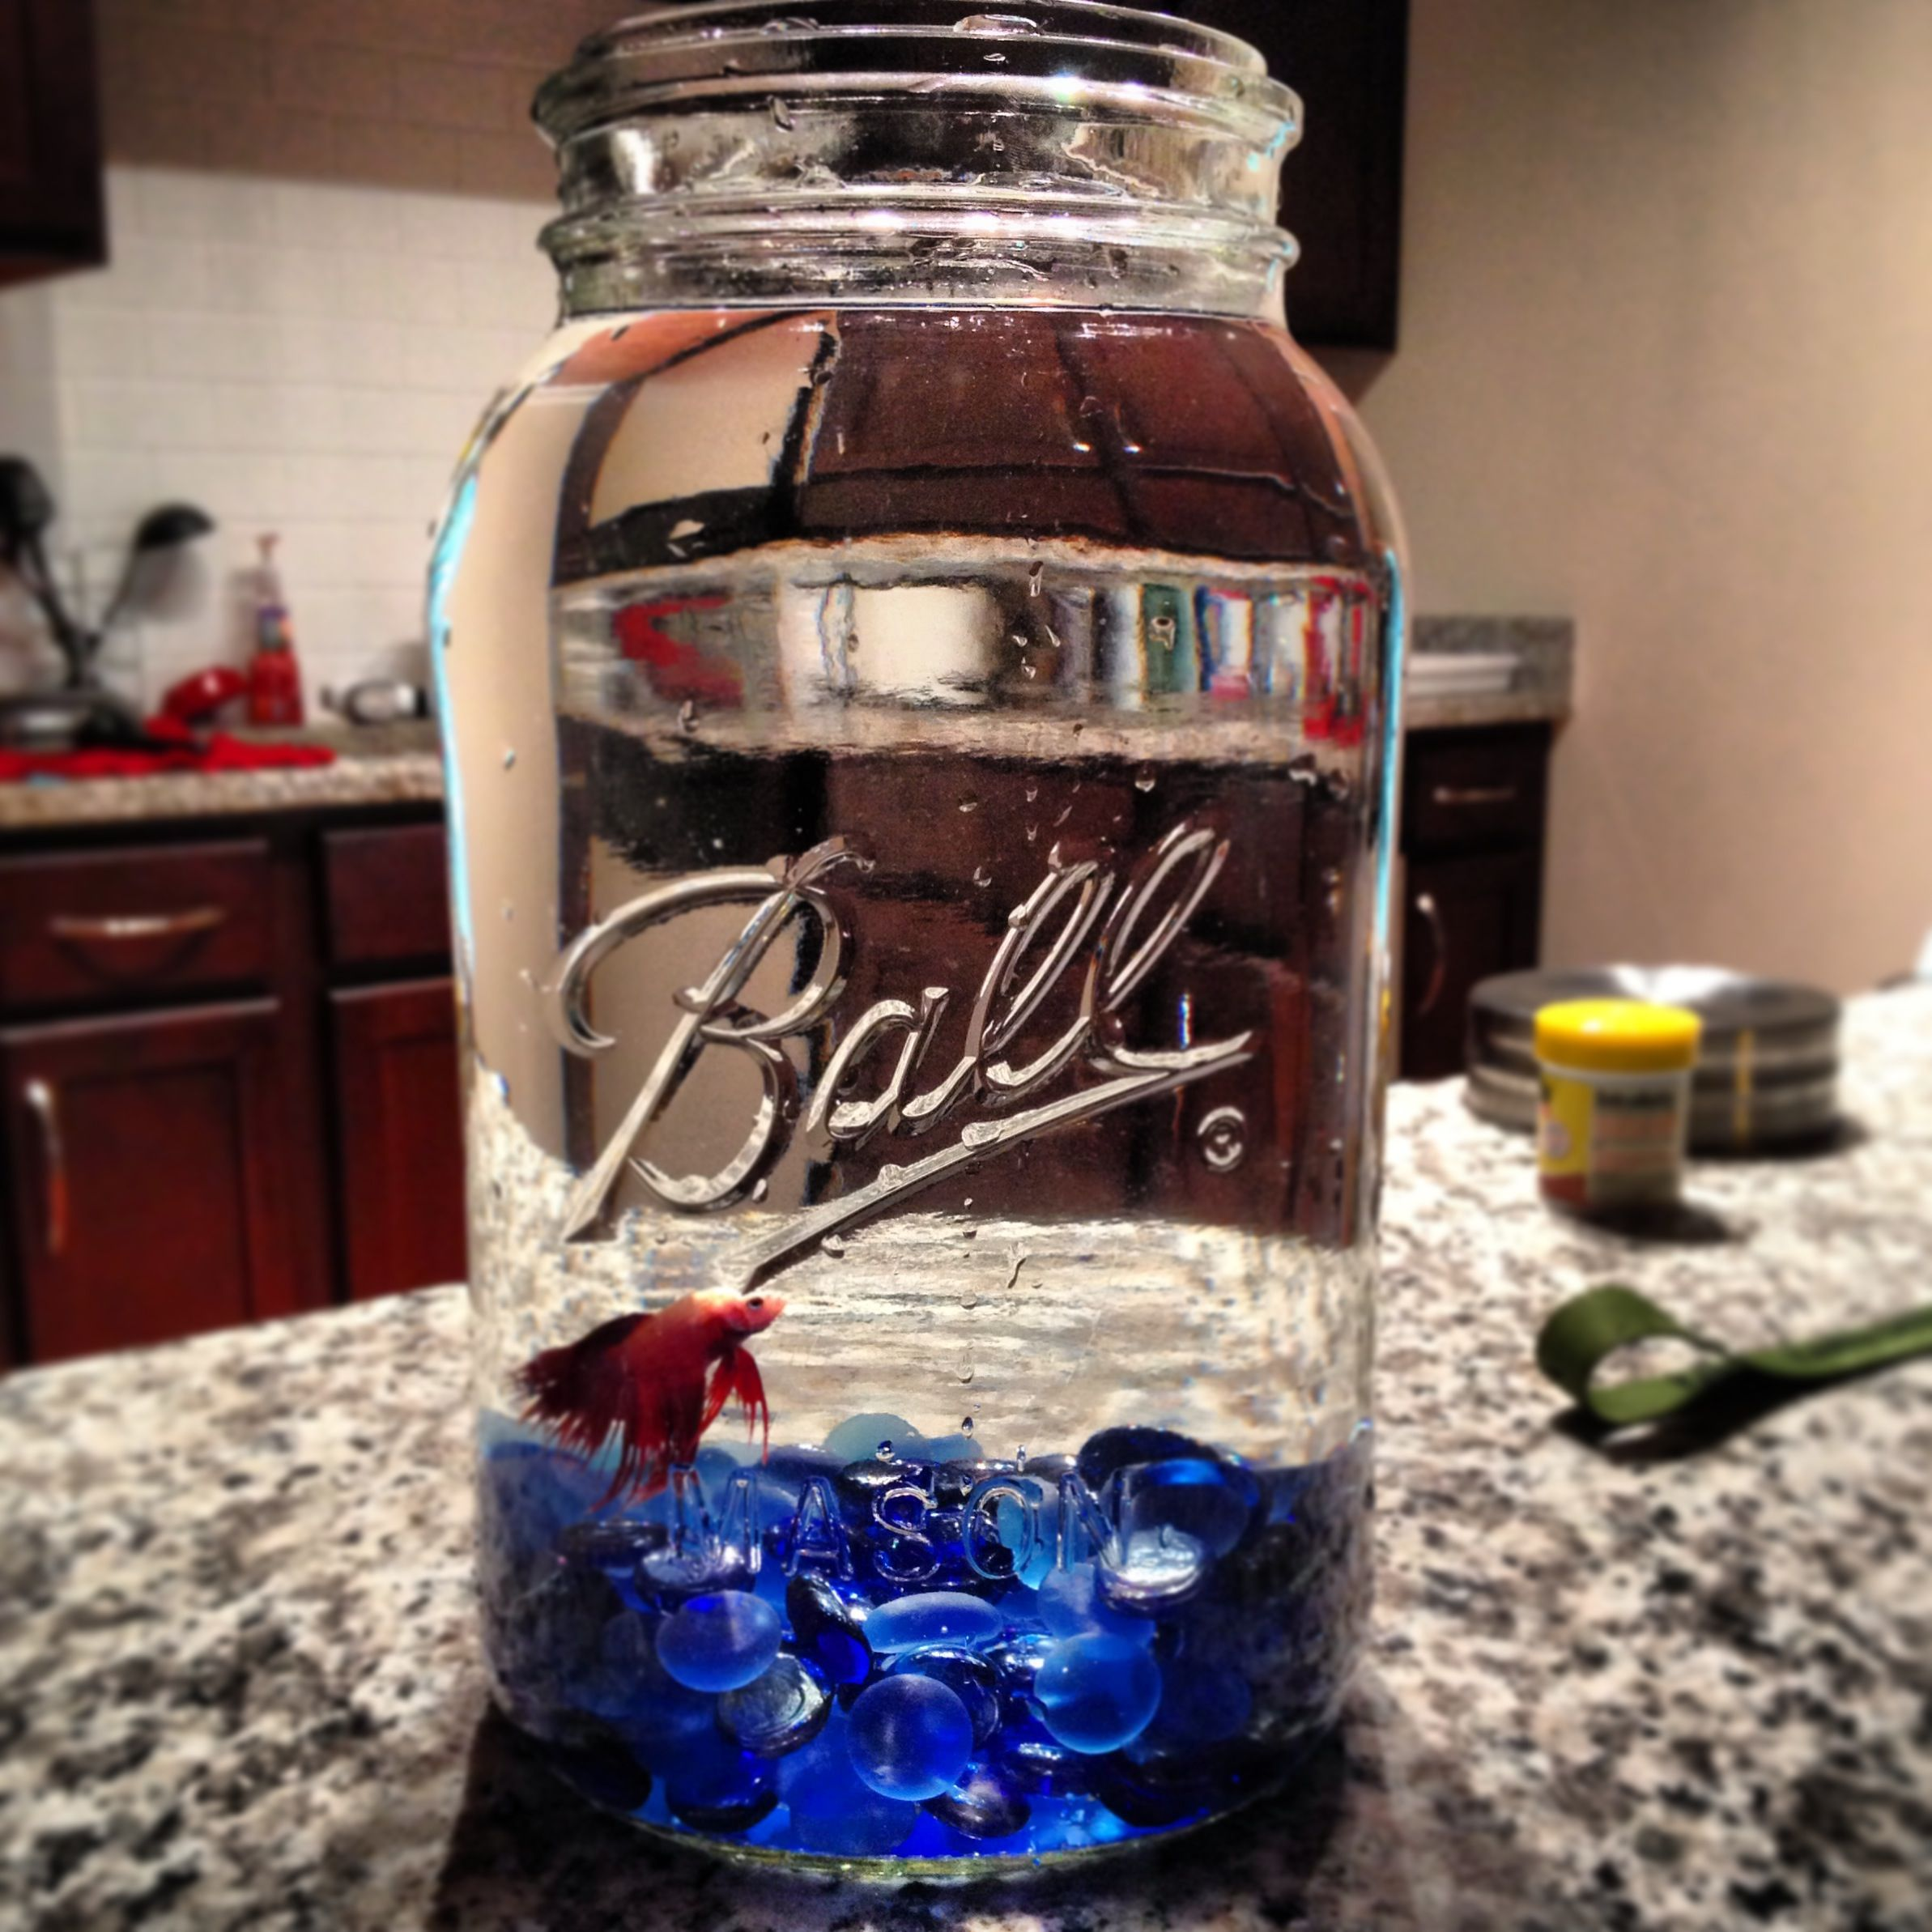 Finding the best betta fish food for your betta fish Betta Fish